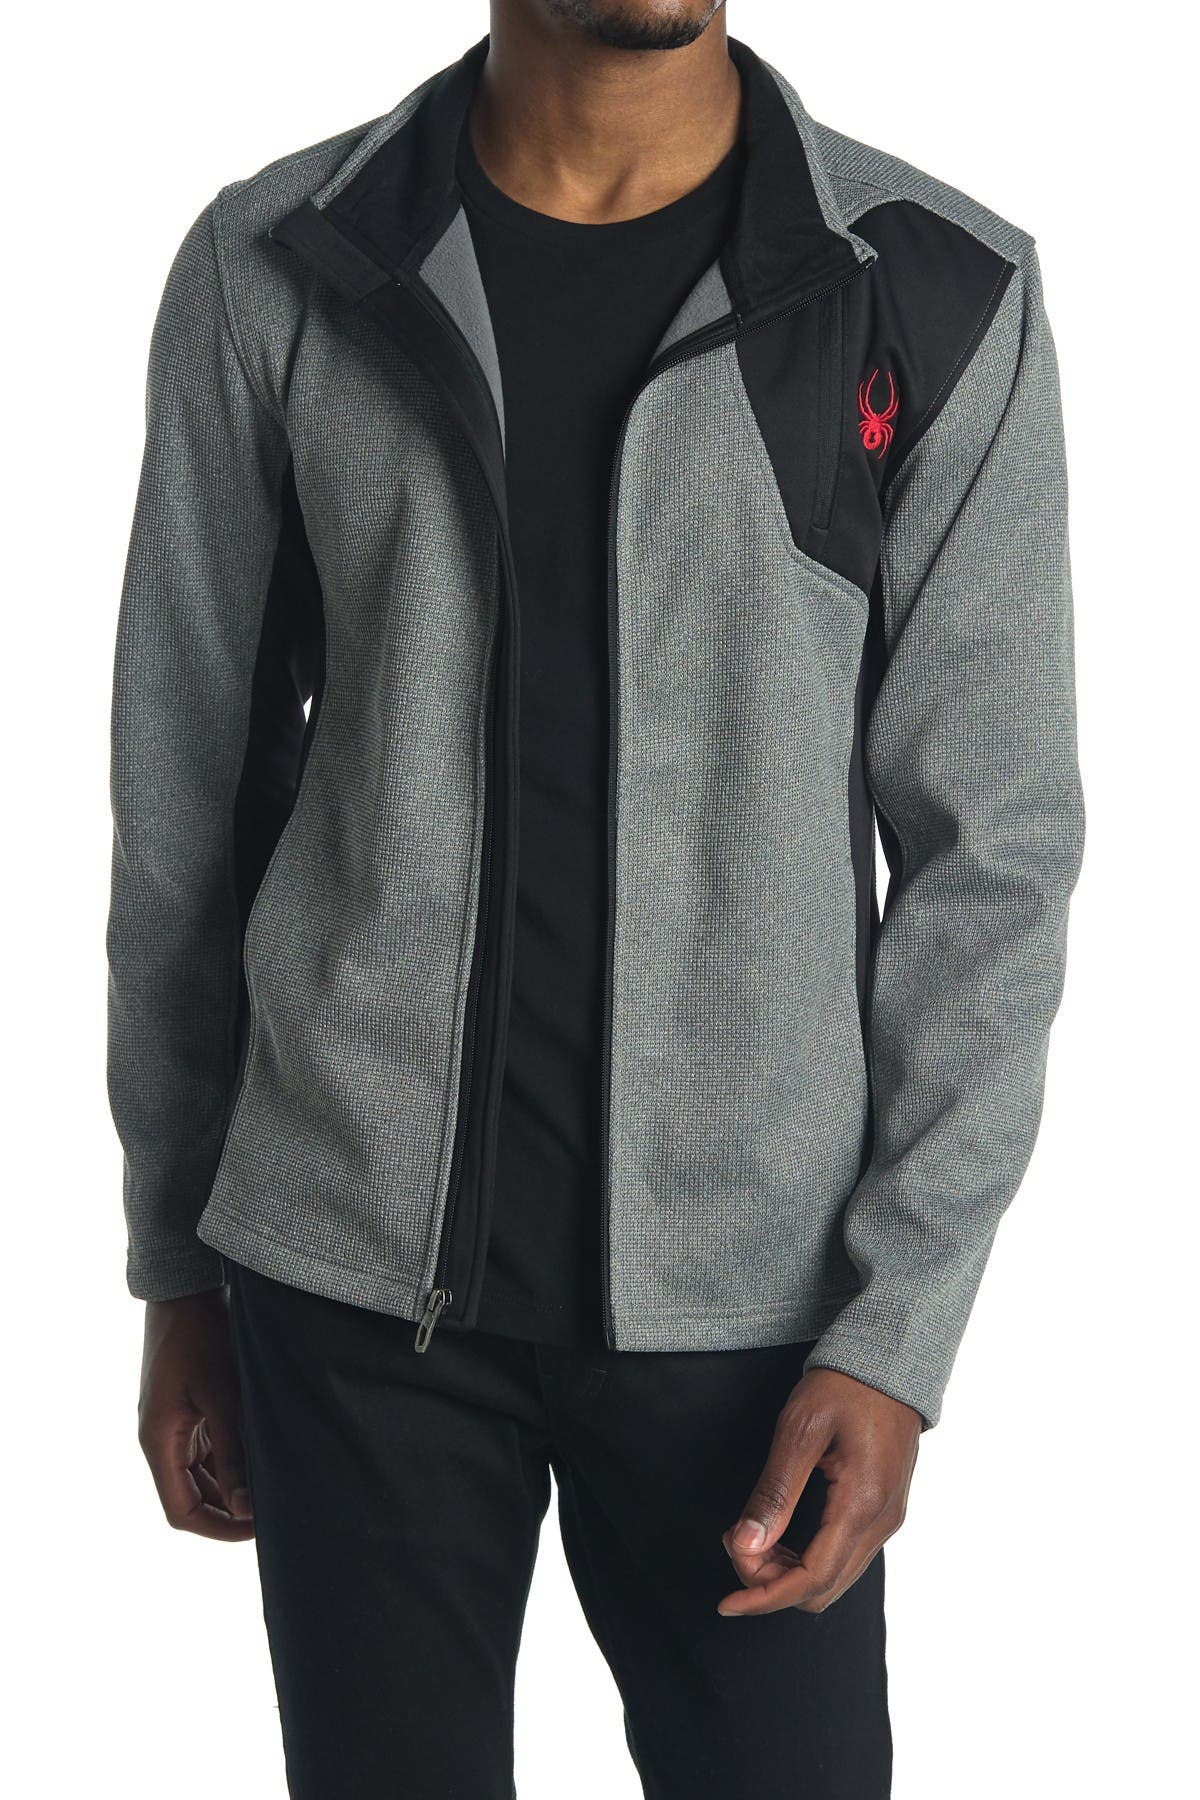 Image of SPYDER Raider Full Zip Front Jacket